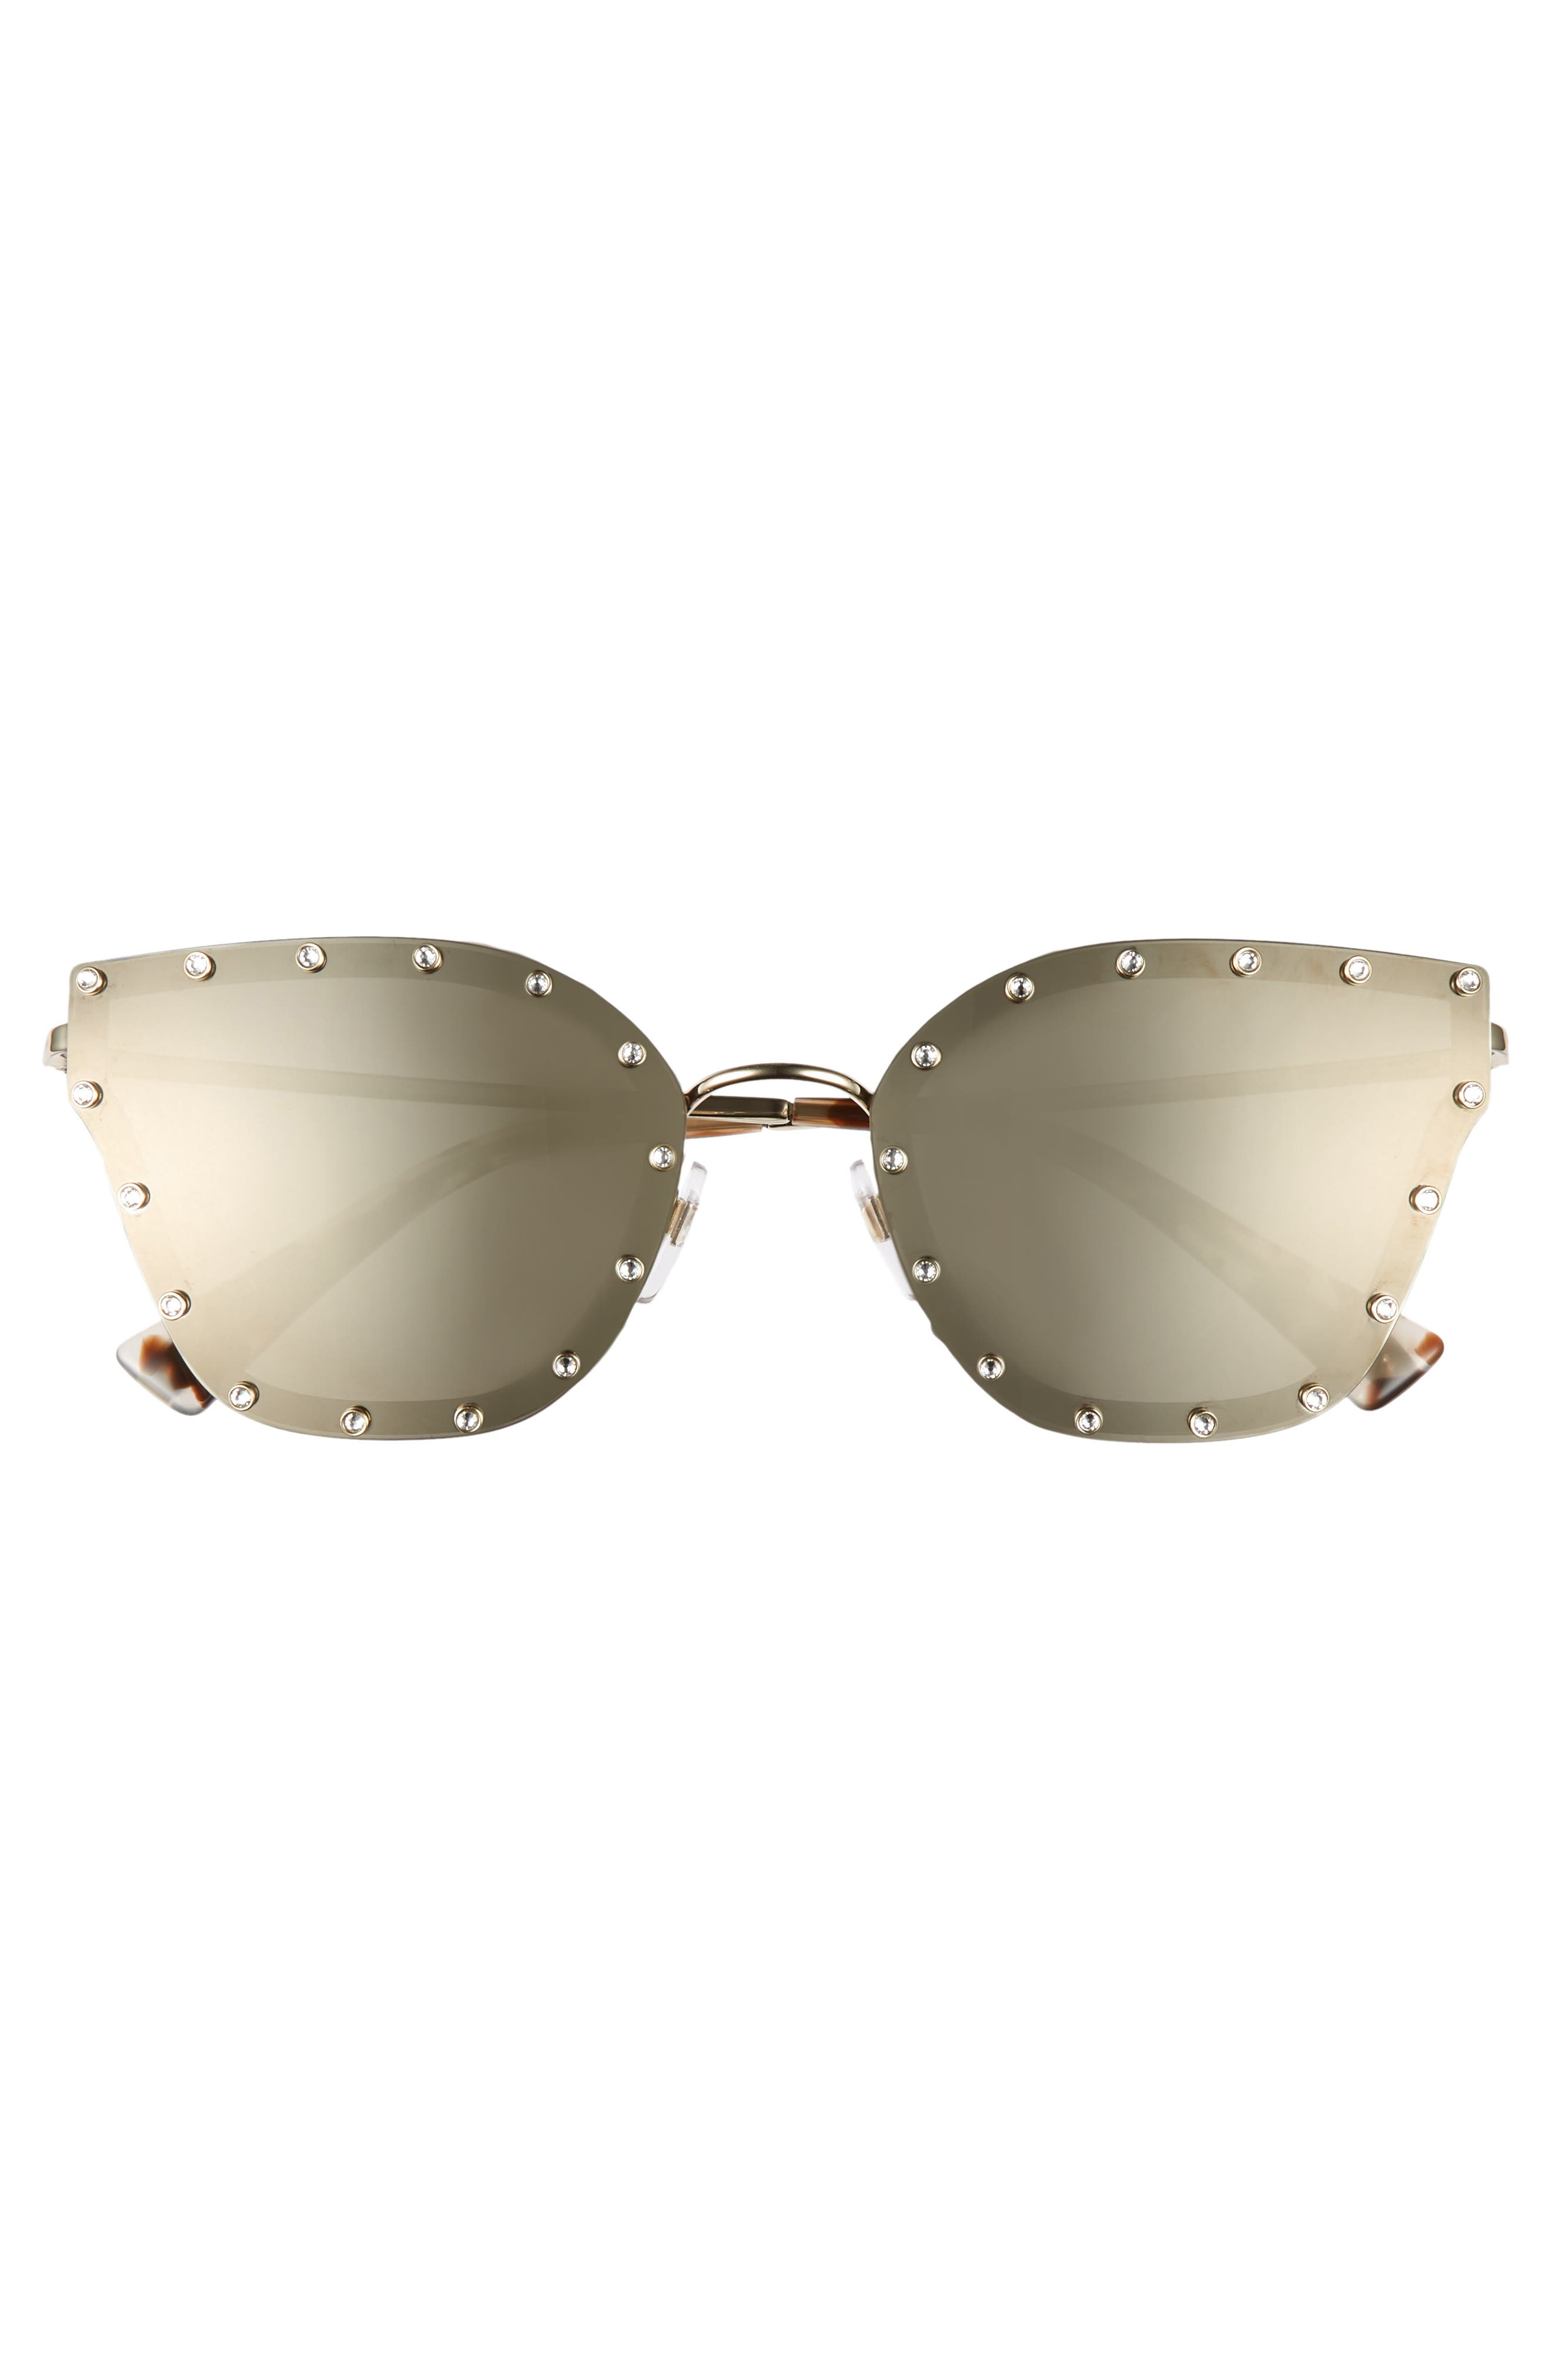 VALENTINO,                             59mm Cat Eye Sunglasses,                             Alternate thumbnail 3, color,                             LIGHT GOLD/ GOLD